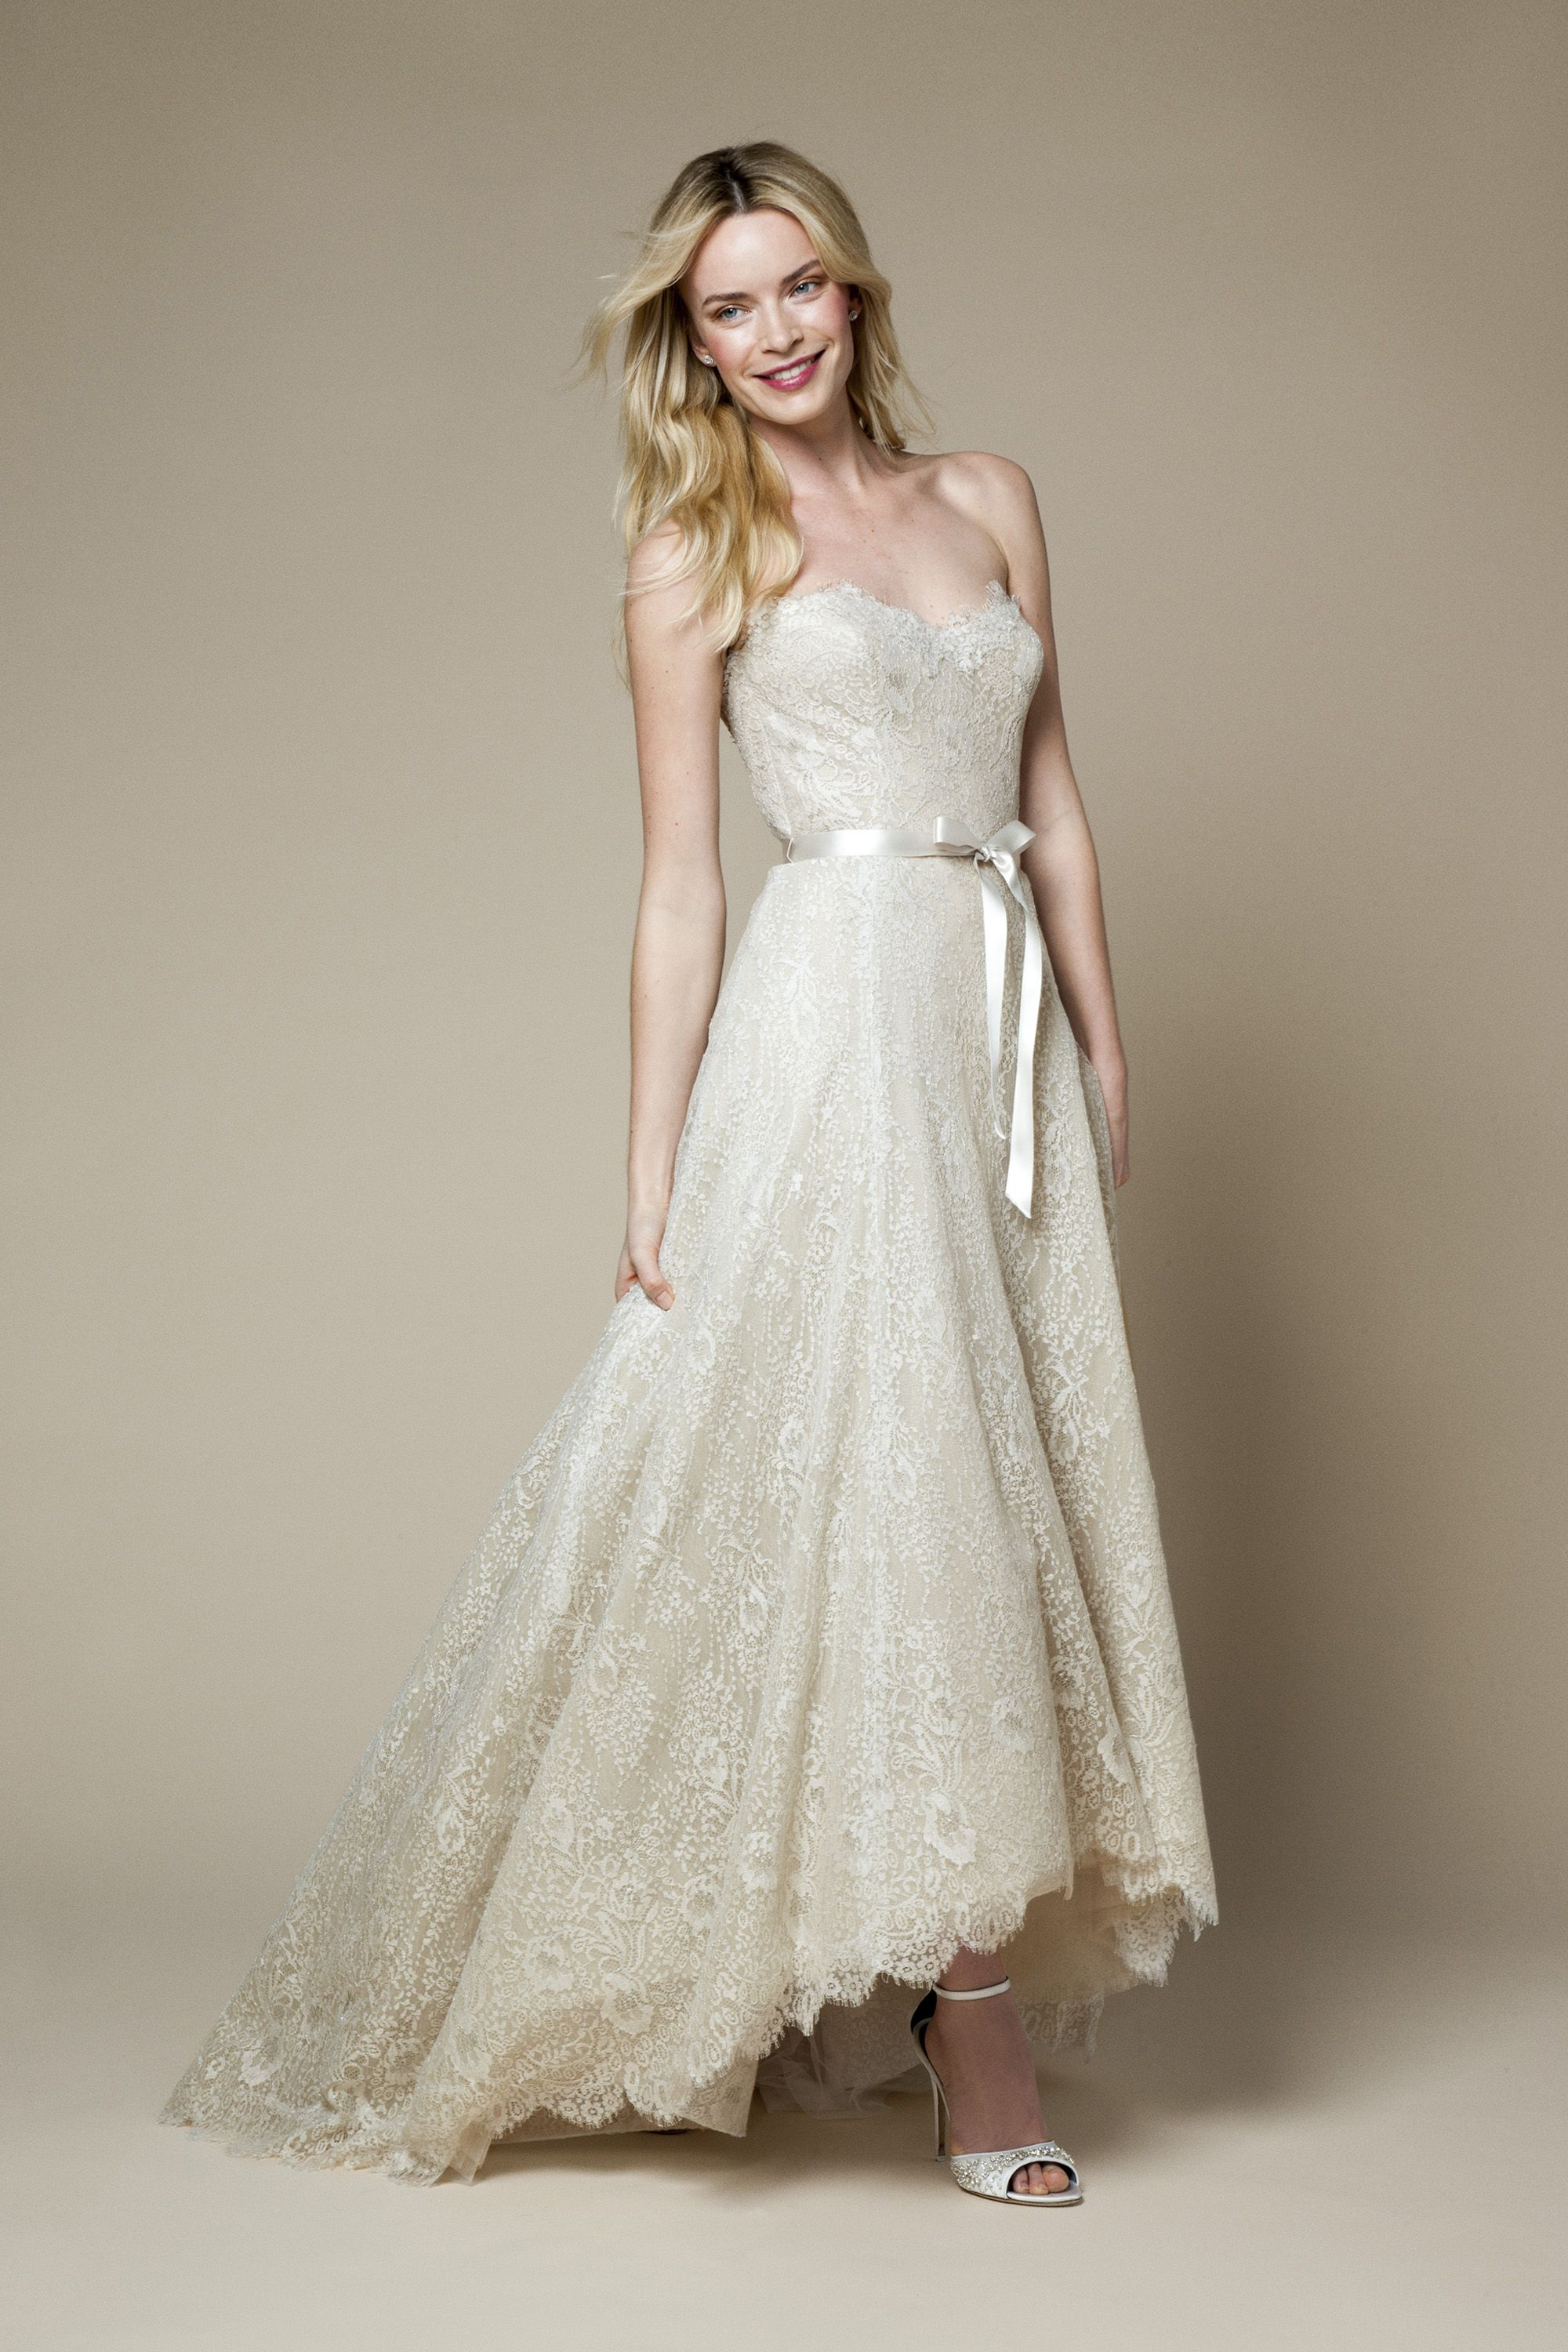 Elite wedding dresses  Bliss at Luelite Boston   Newbury St nd Flr